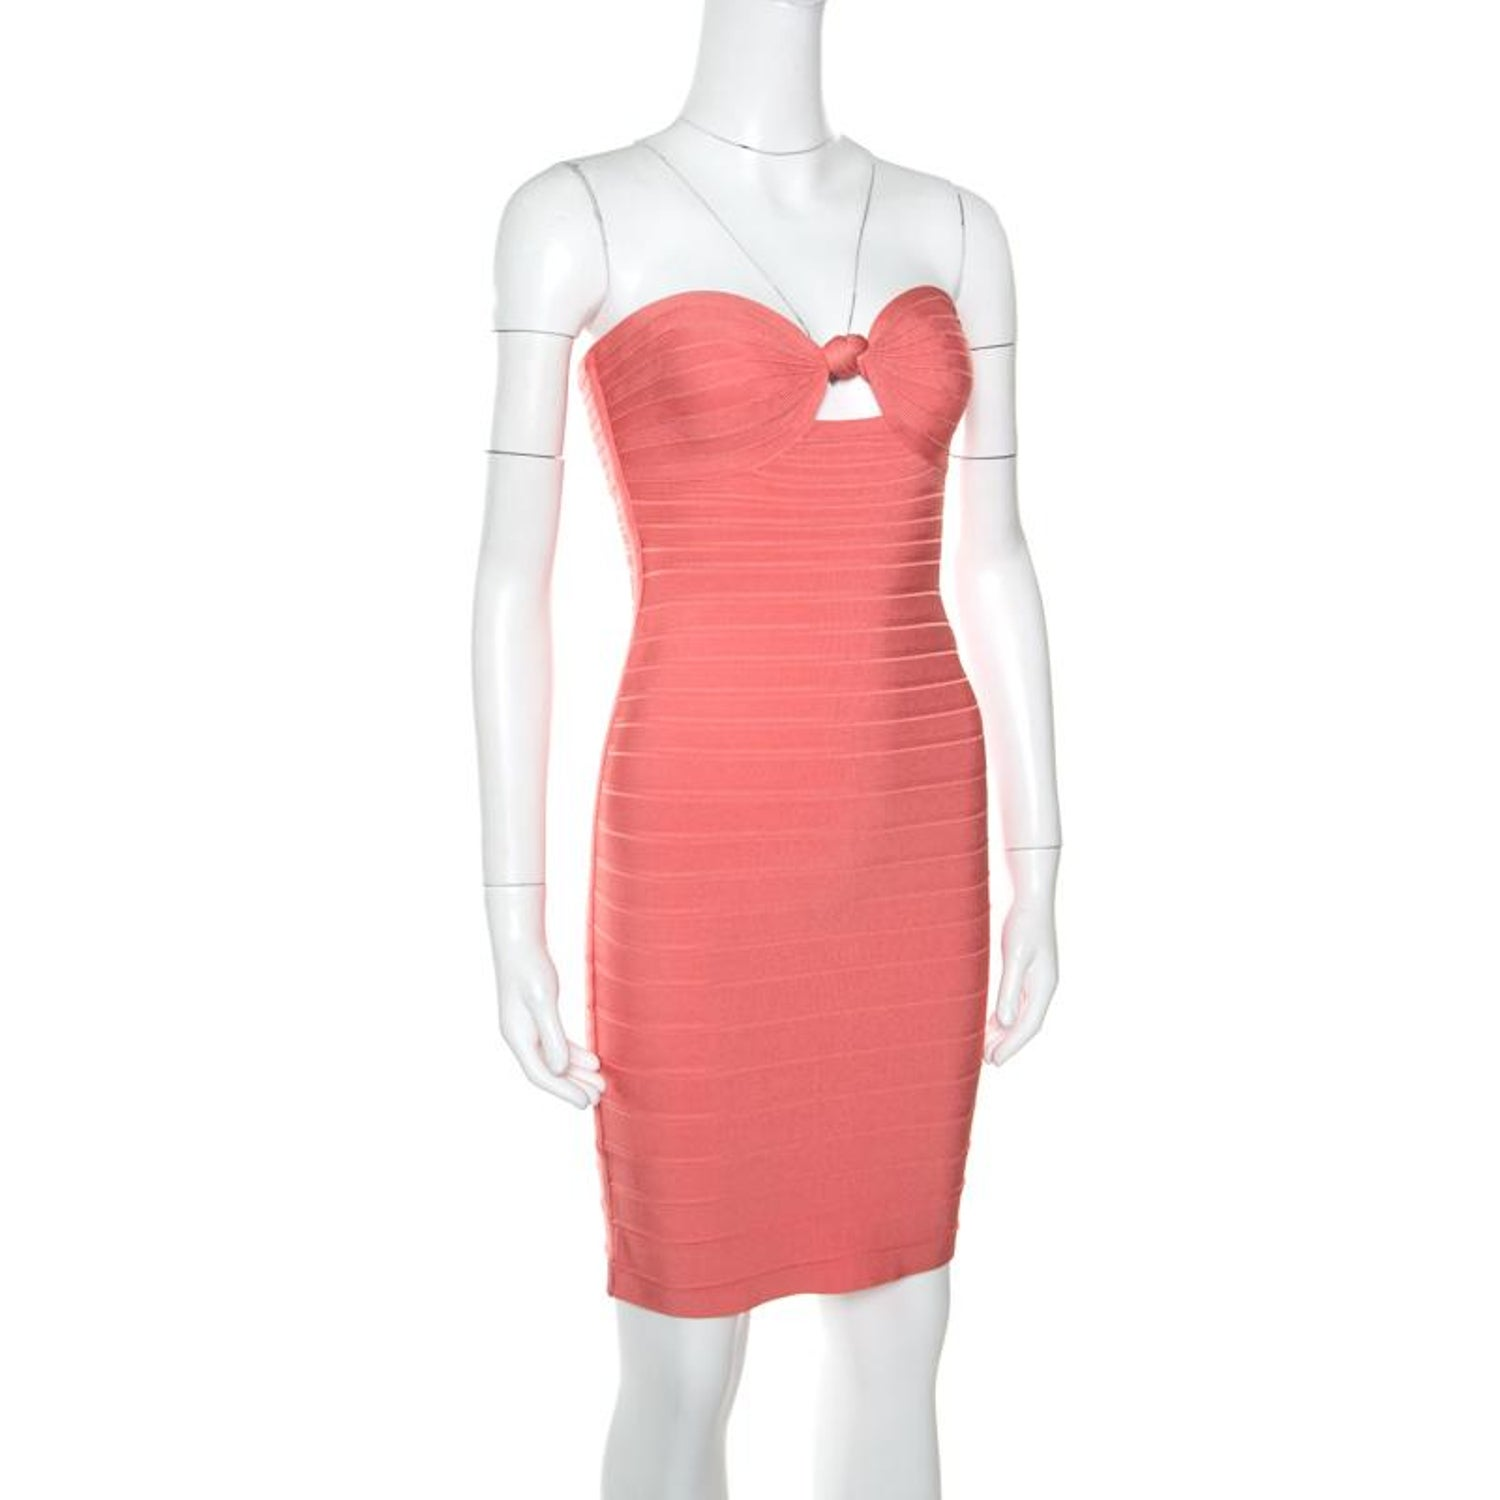 f9c1bad08841 Herve Leger Coral Pink Strapless Arabella Bandage Dress S For Sale at  1stdibs